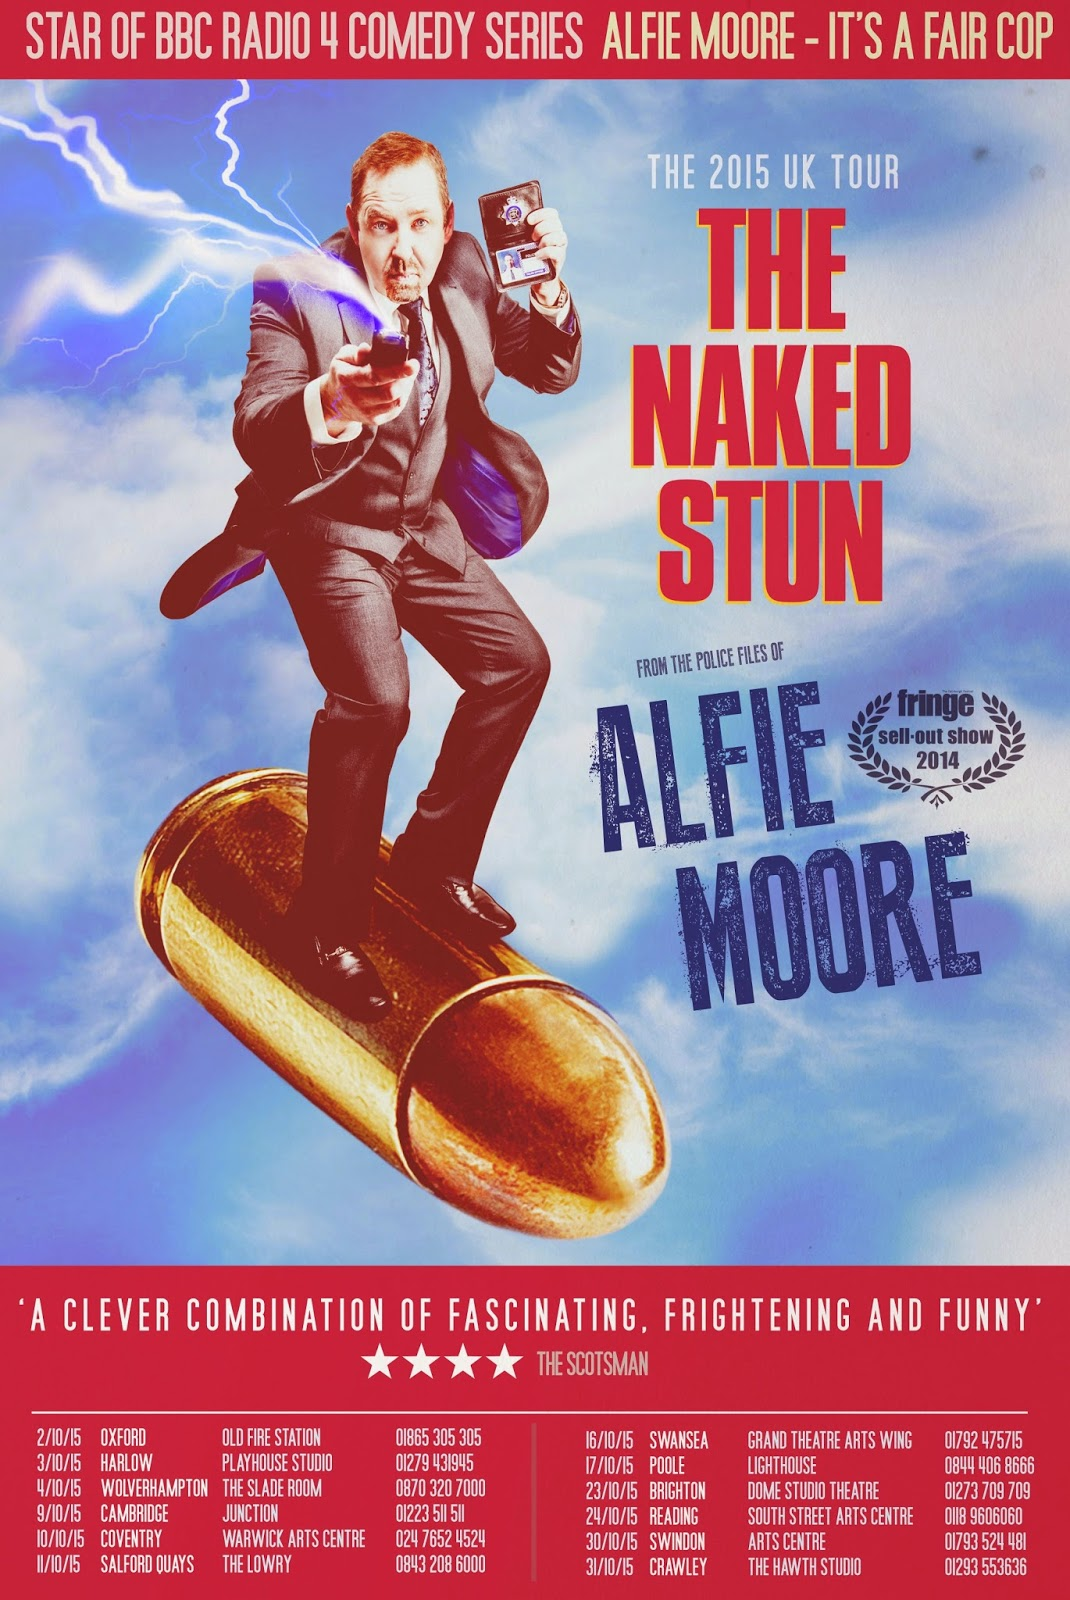 Alfie Moore - The Naked Stun UK Tour 2015 - ticket and dates